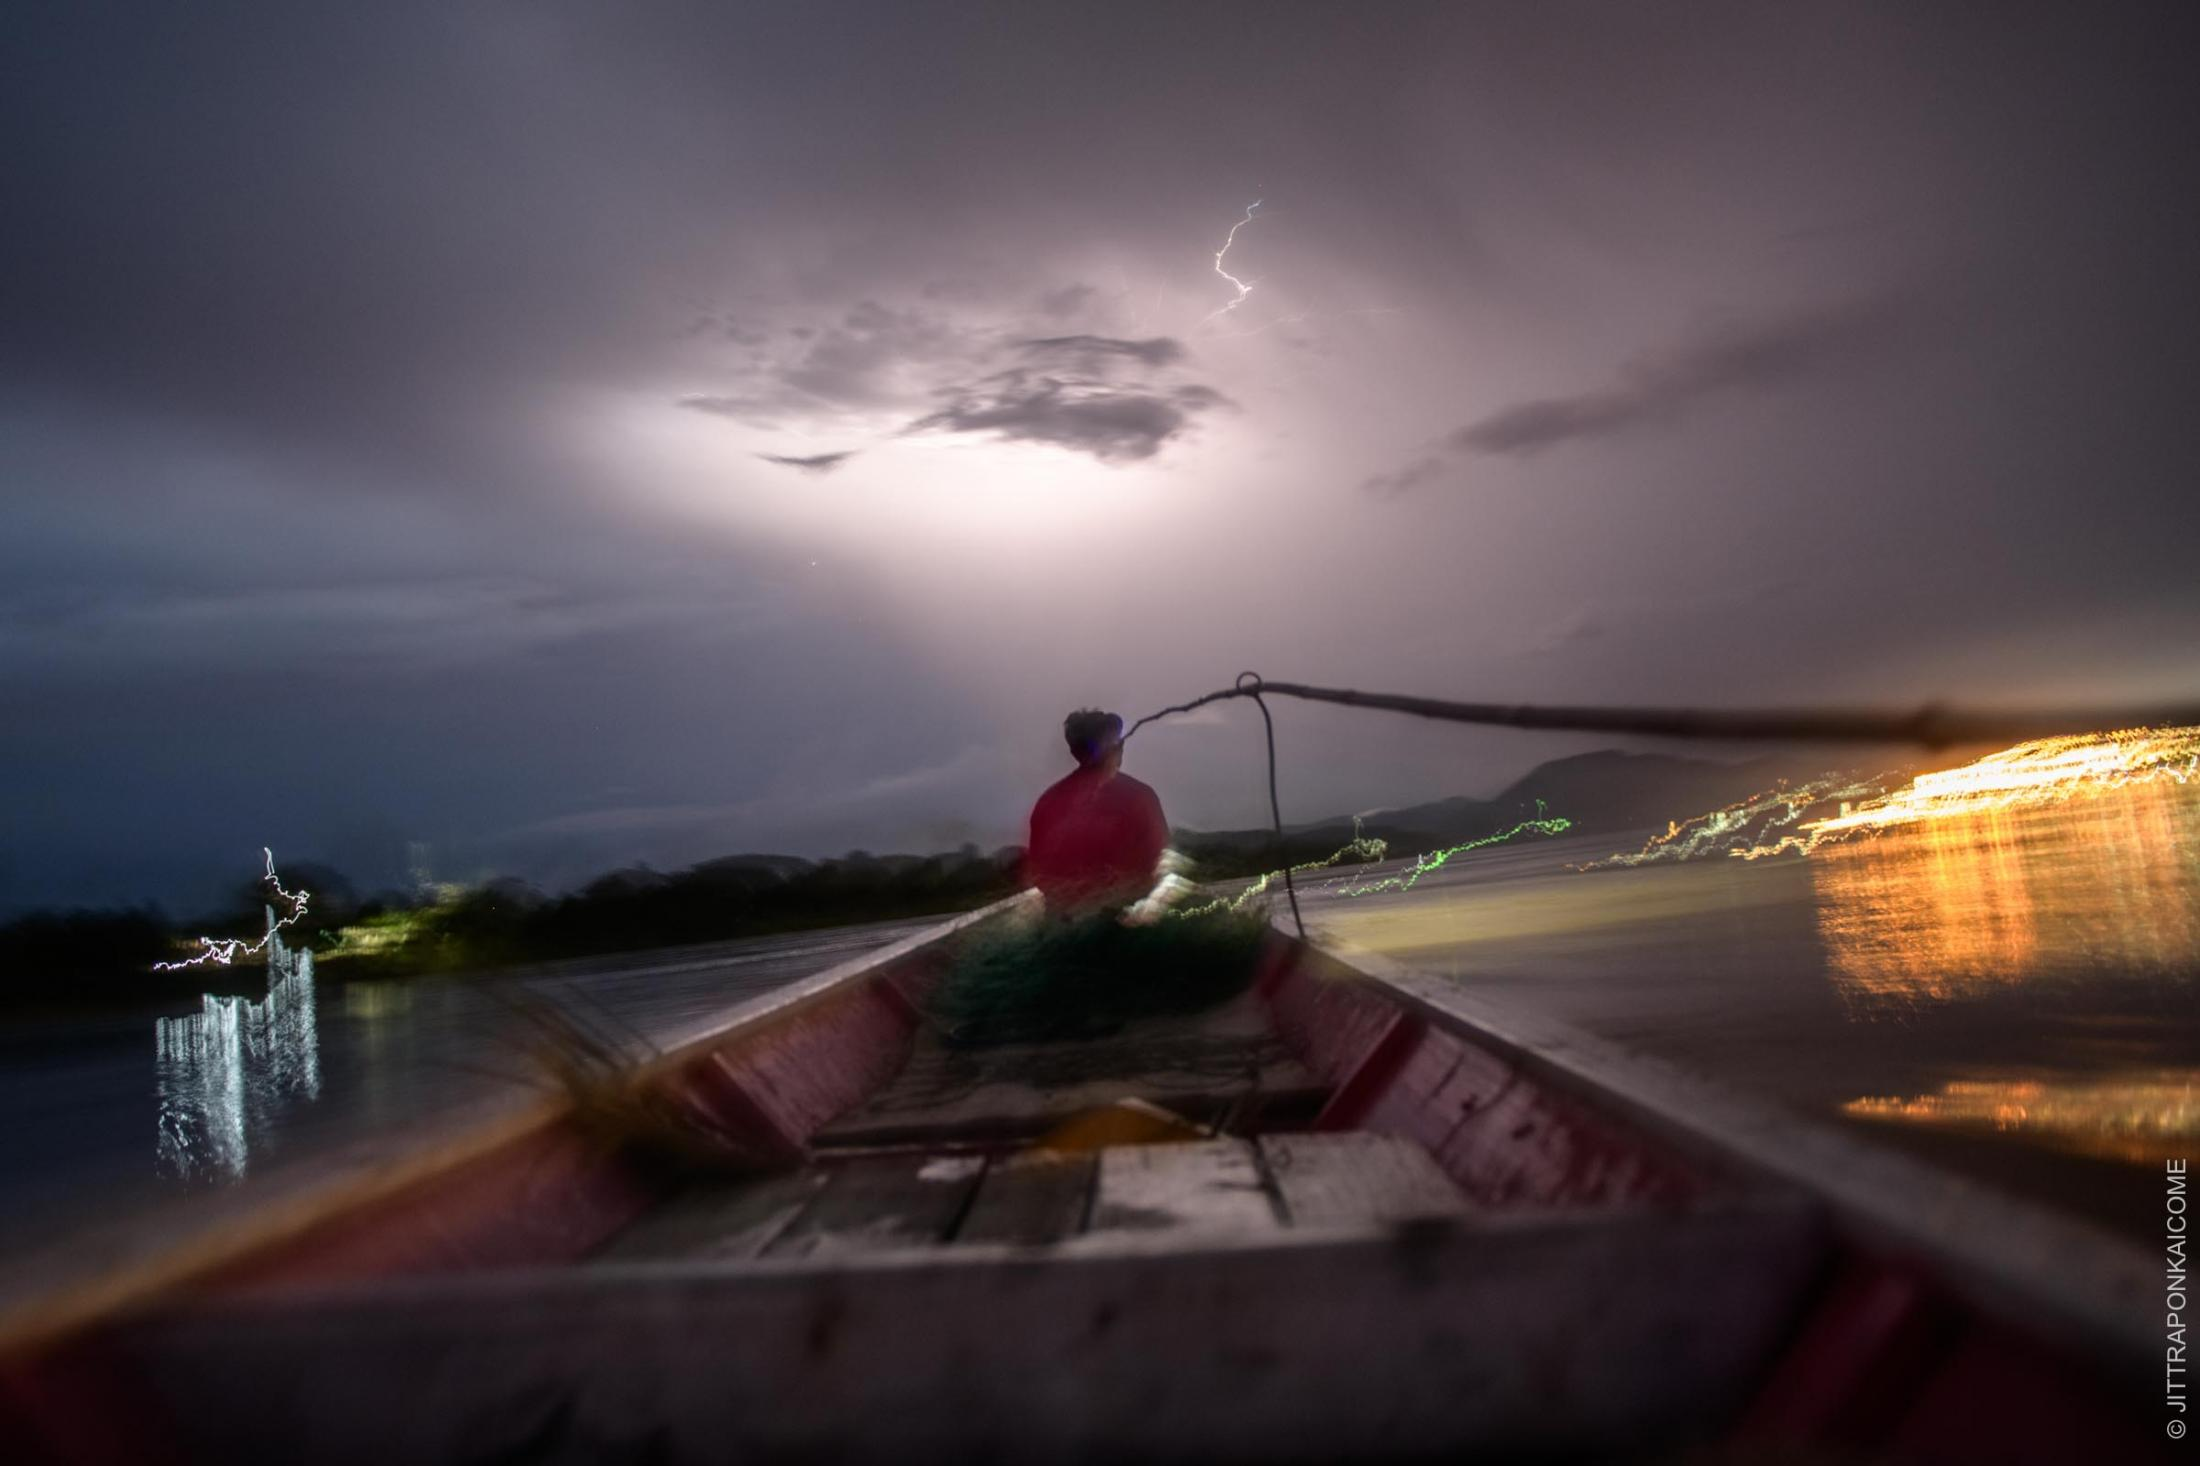 Unusual tidal activity combined with the lower water level of the Mekong River is affecting the ecosystem and livelihoods of thousands of people along the river banks. The future for fishers on the Mekong River is uncertain. The fisherman is sailing towards the rain storm. In Loei, Thailand – August 2020.